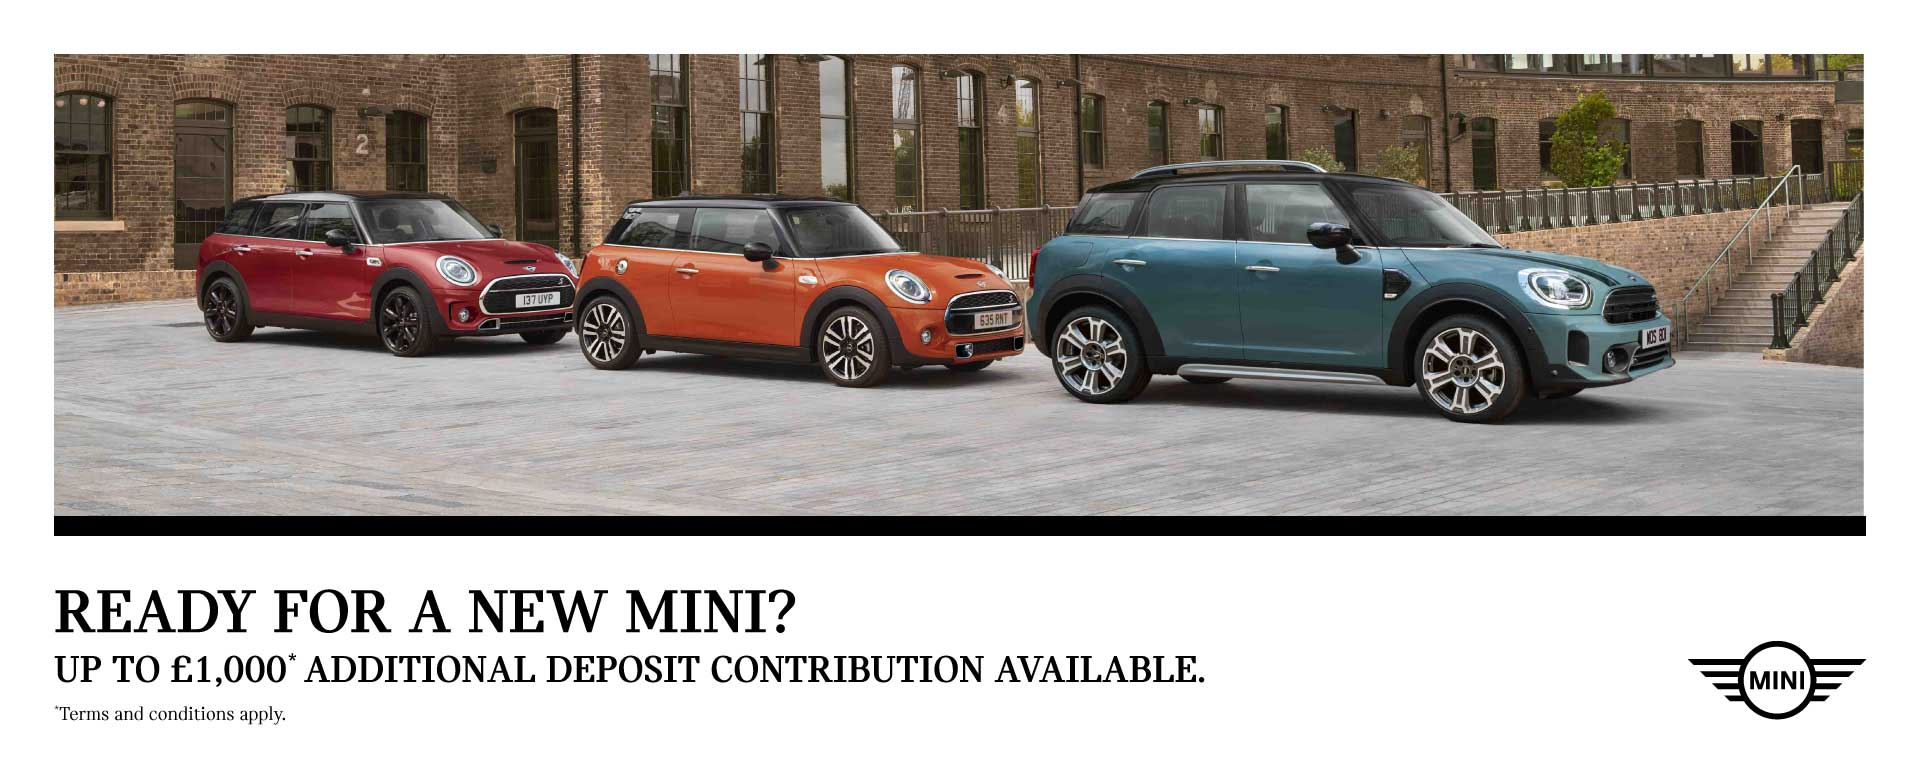 Ready for a New MINI